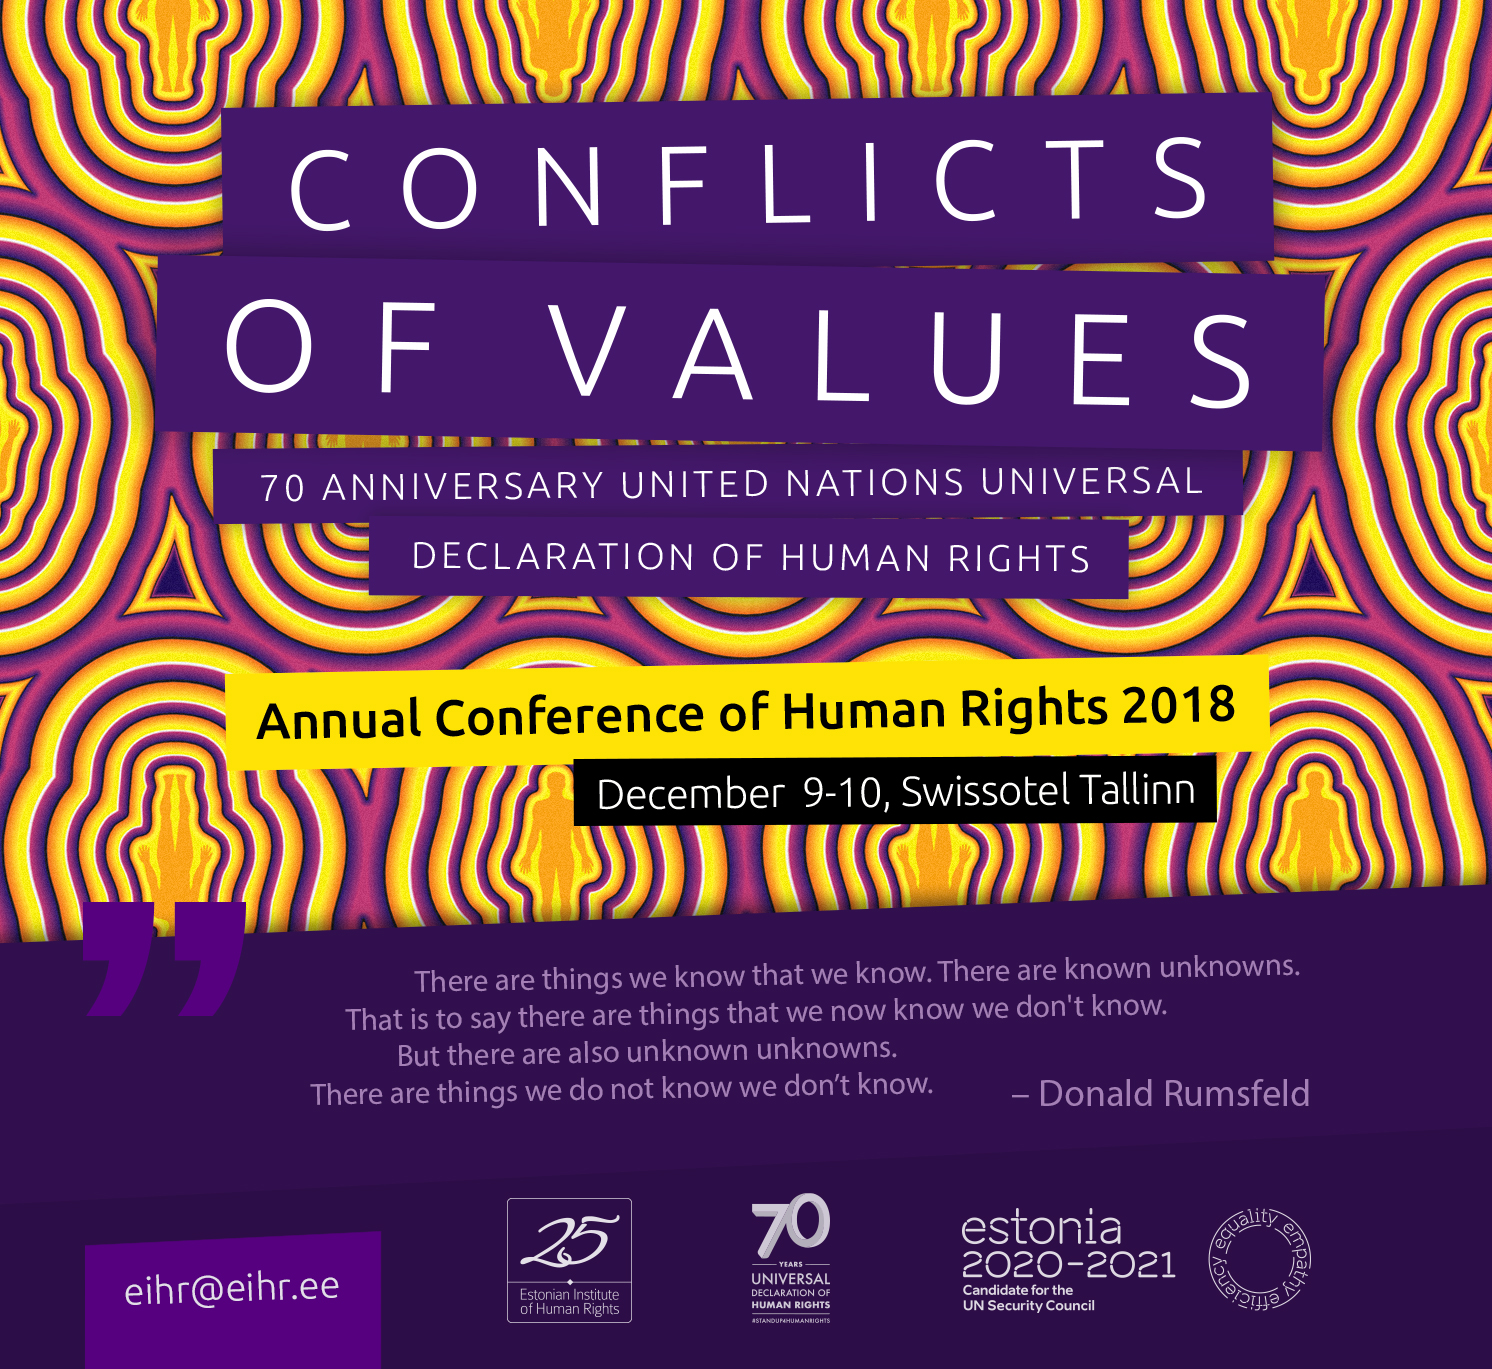 Conference of Human Rights 2018